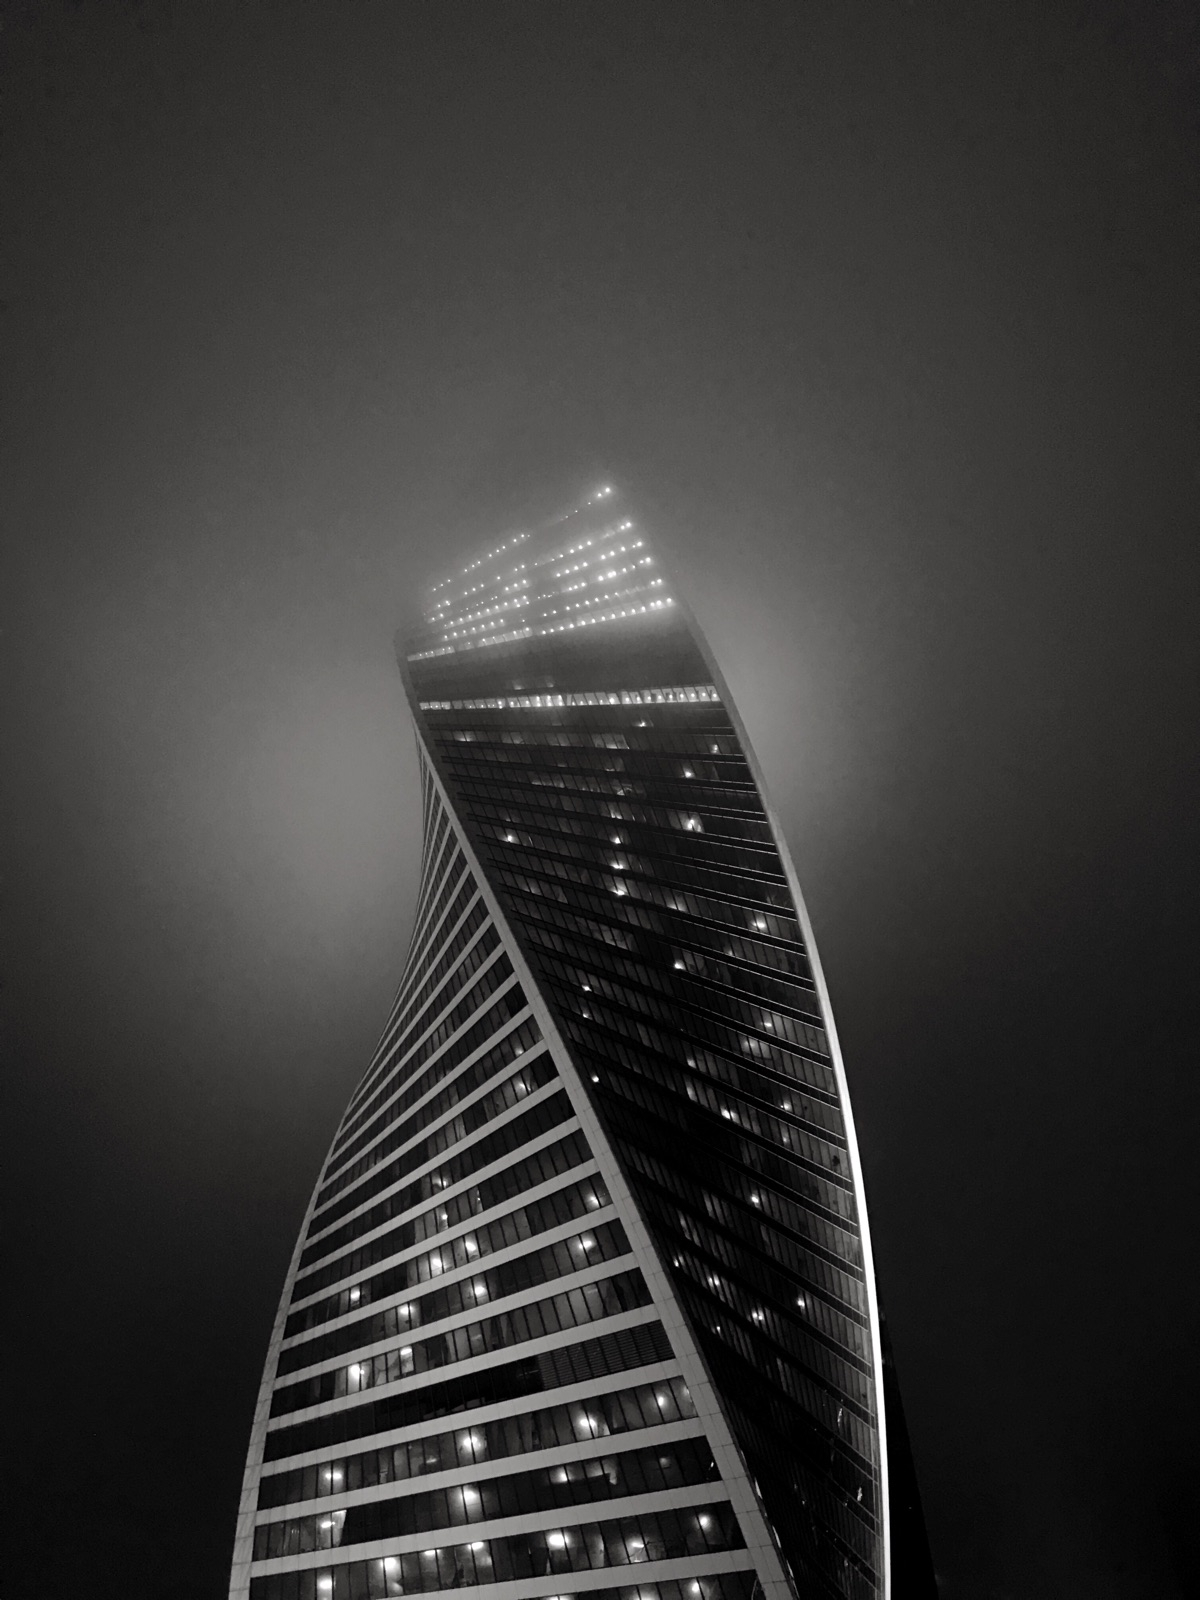 Moscow - architecture, moscow, skyscraper - nicksushkevich | ello